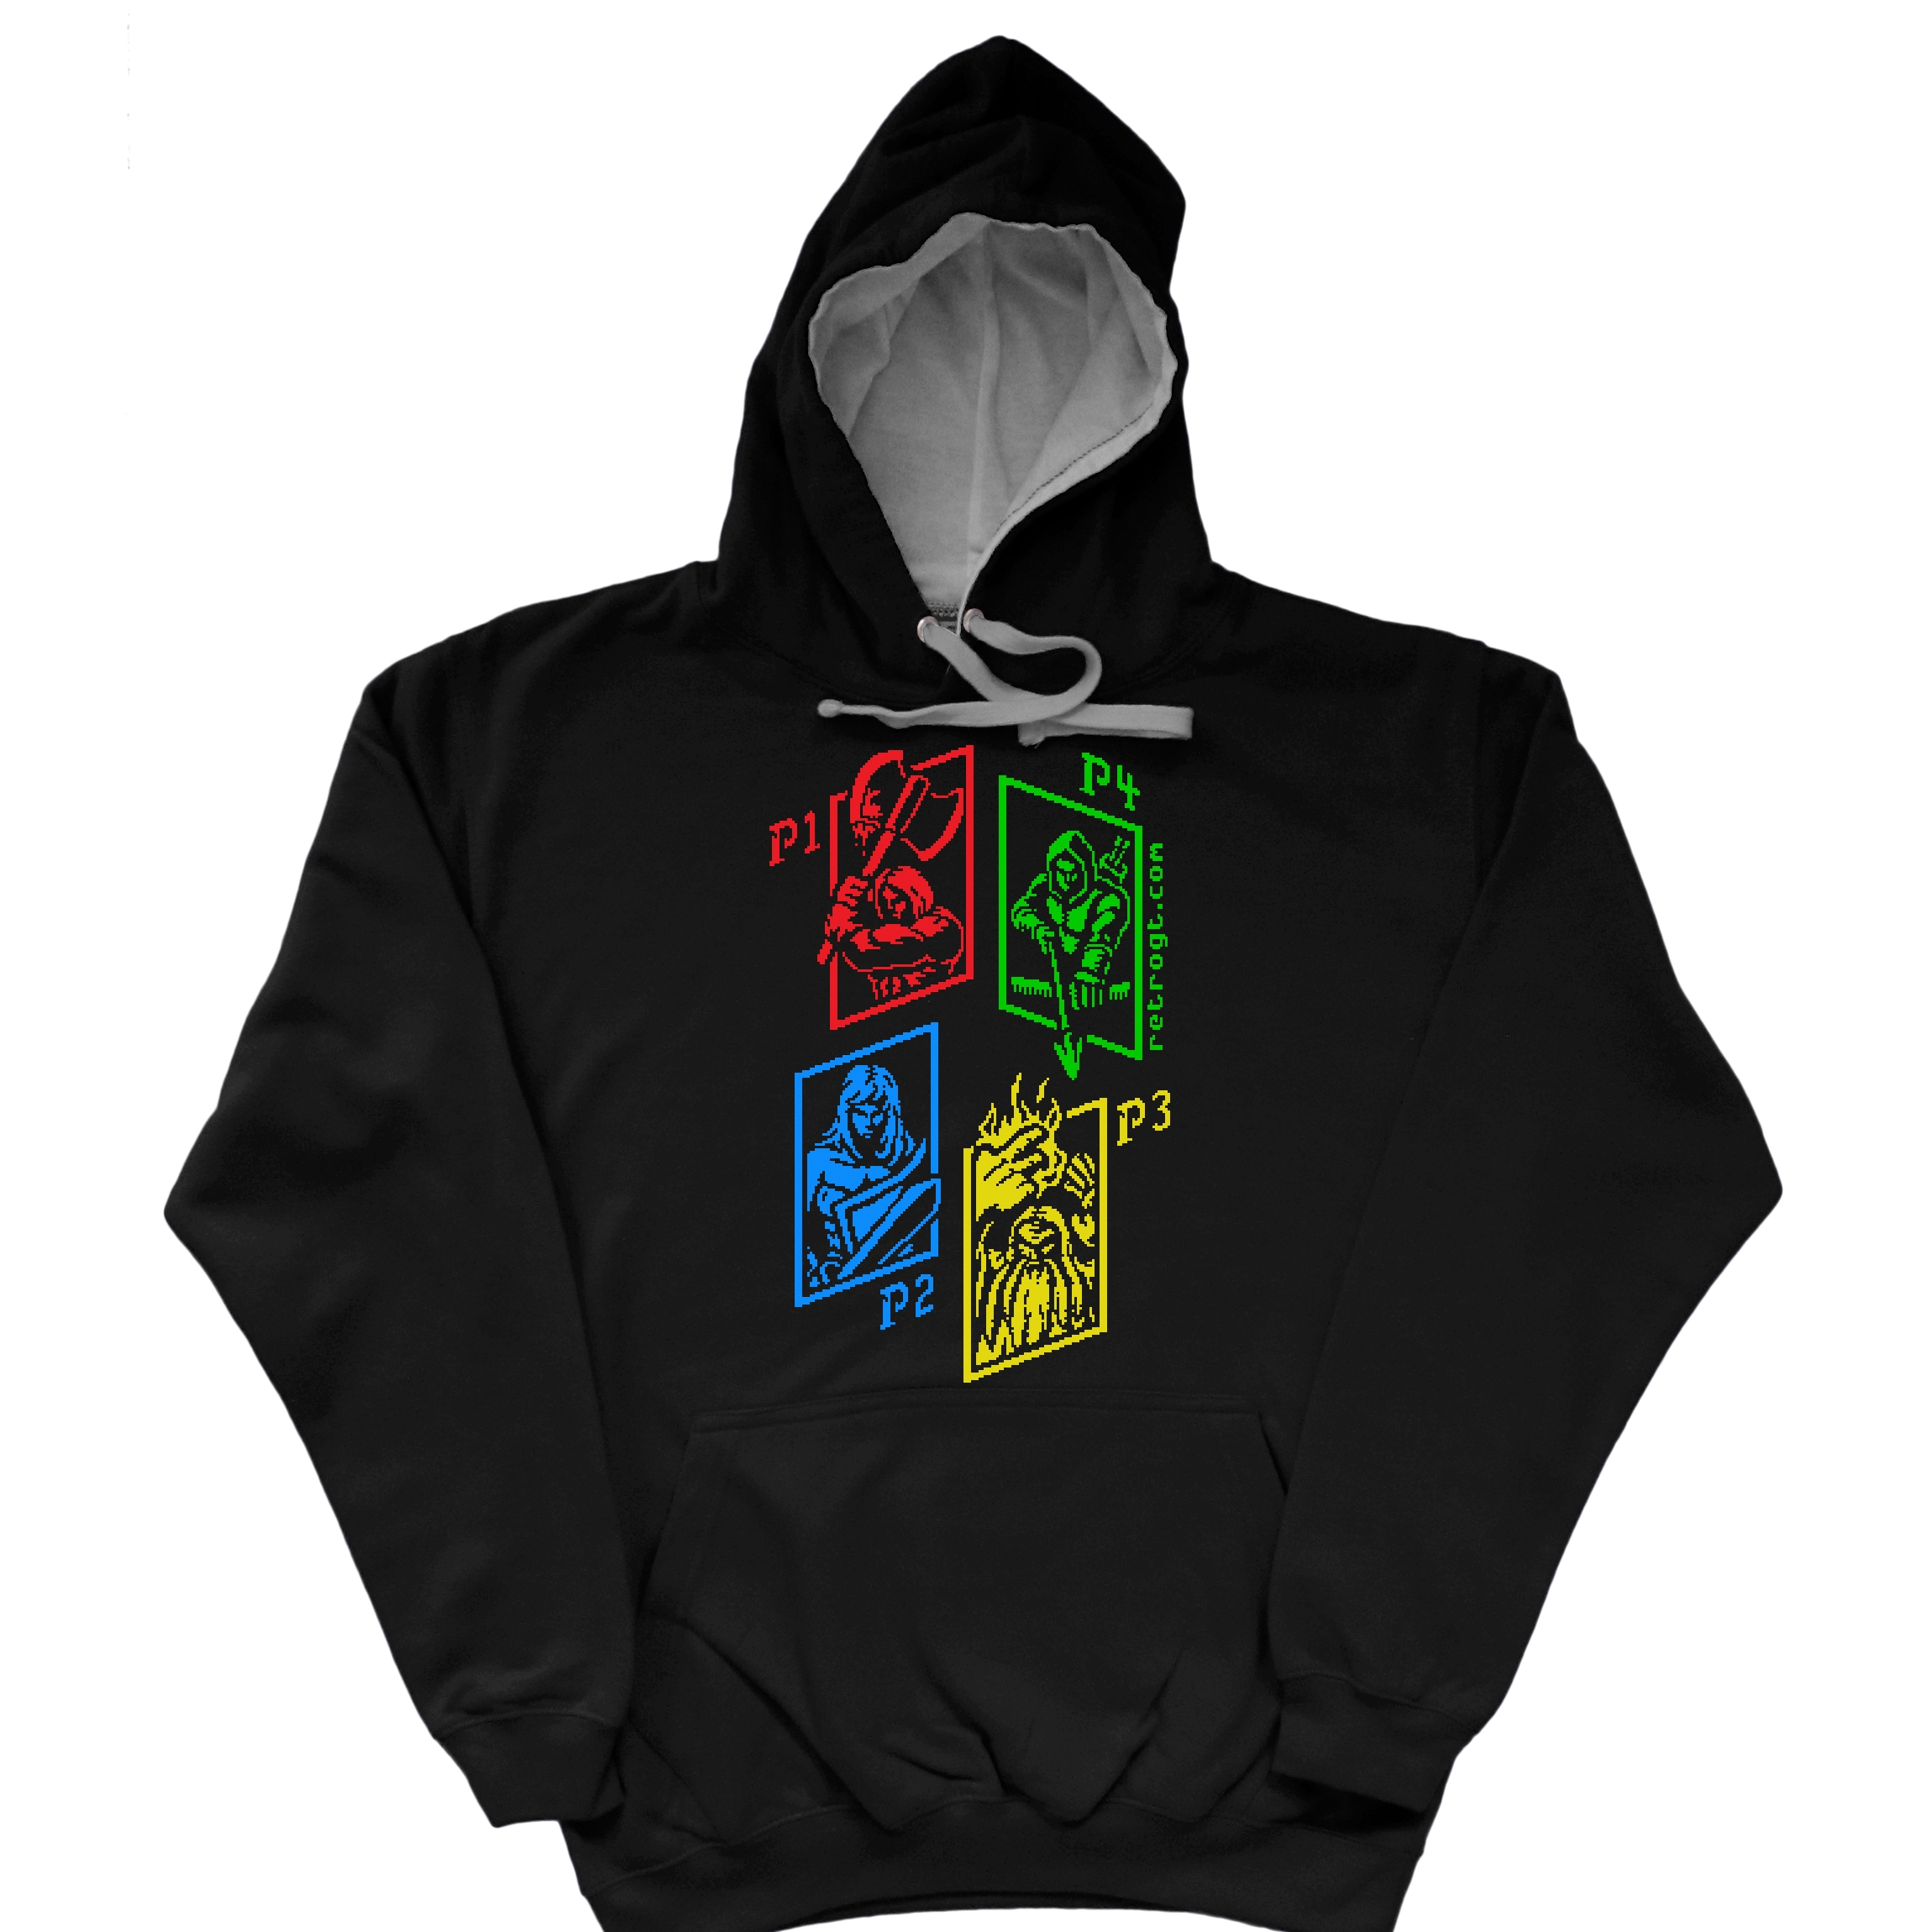 Alternative photo: Dungeon Crawler Hoodie